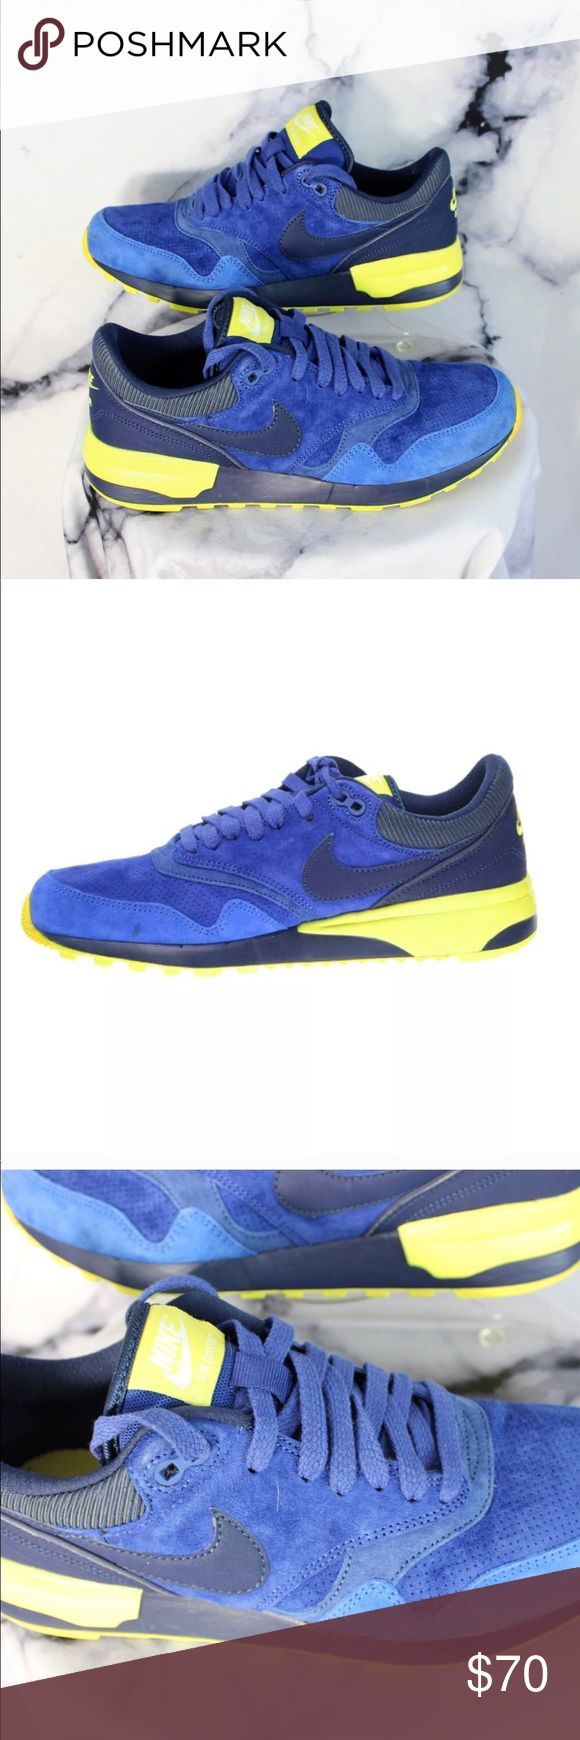 """Nike Air Odyssey Blue Suede Leather Trainers Sz8 These kicks are a vibrant blue and neon yellow/green. Sickening colorway. 8 men's. 11 women's. 41 EU. Pre owned.   If you like it, send me an offer! Too shy to offer? Add it to bundle and I'll send you my best price! Want to buy it full price? Comment """"SOLD"""" and add to bundle to receive free or discounted shipping.  Thanks for stopping! Come back soon as I add new vintage, streetwear, designer, and athlesiure regularly! Nike Shoes Sneakers"""